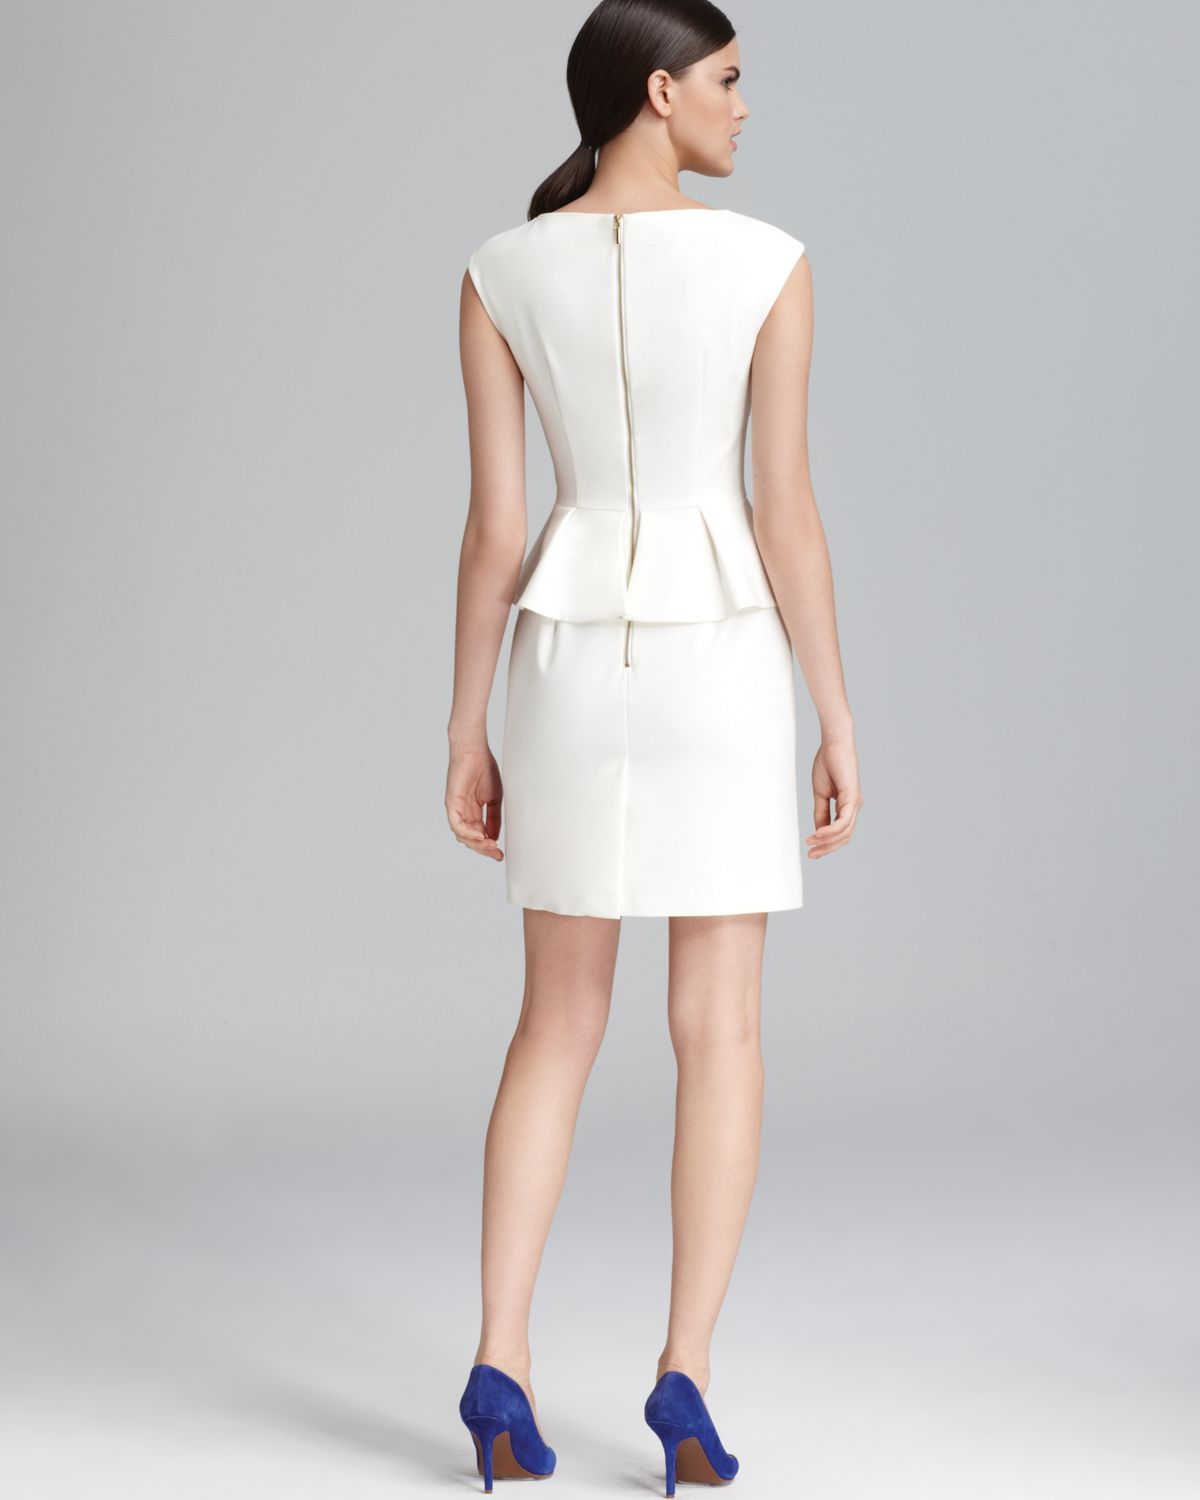 408bd36f59a1 Lyst - French Connection Dress Peplum in White